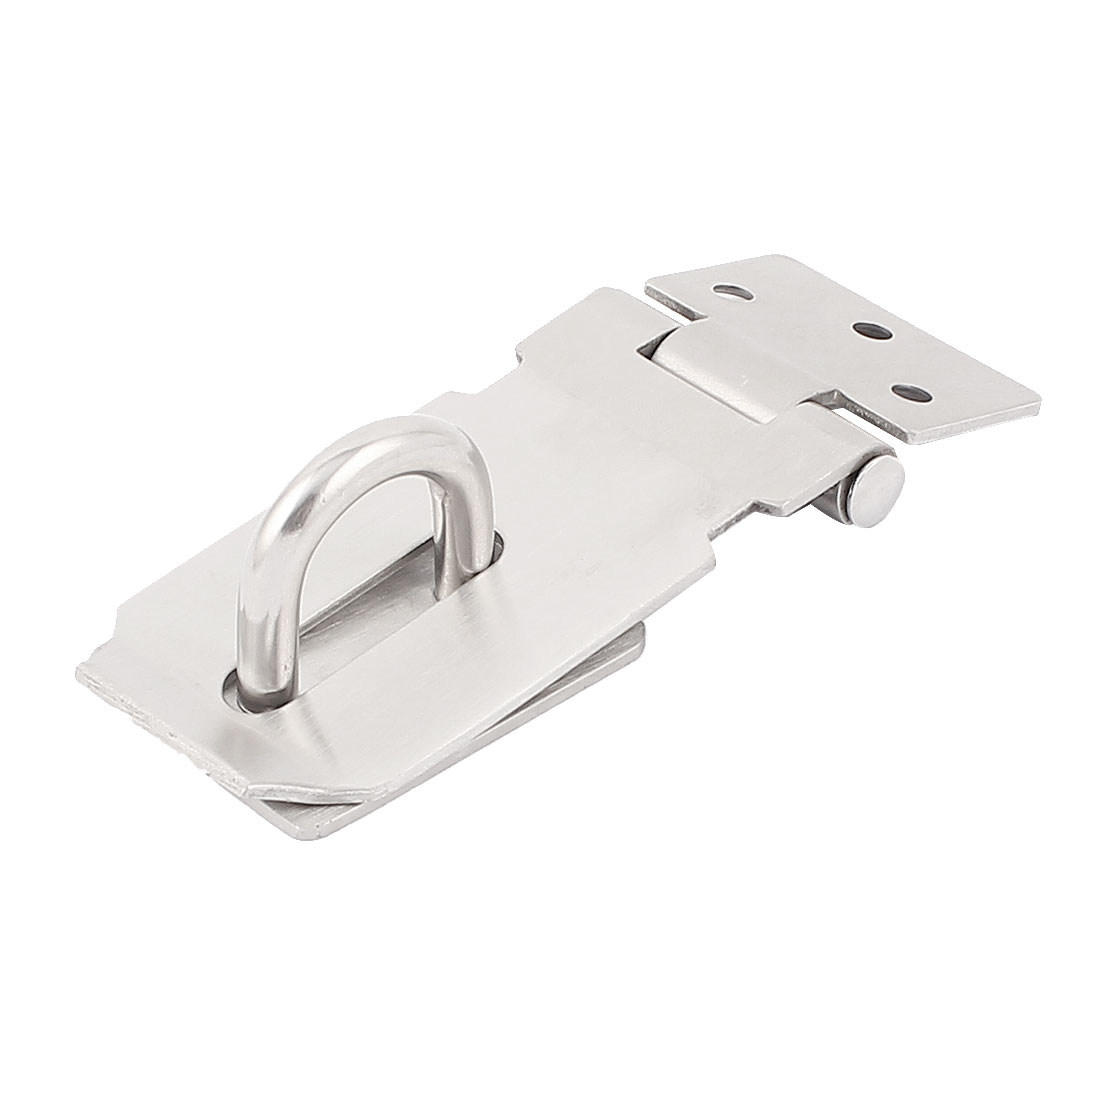 Cabinet Cupboard Gate Door Latch Lock Padlock Metal Hasp Staple Silver Tone